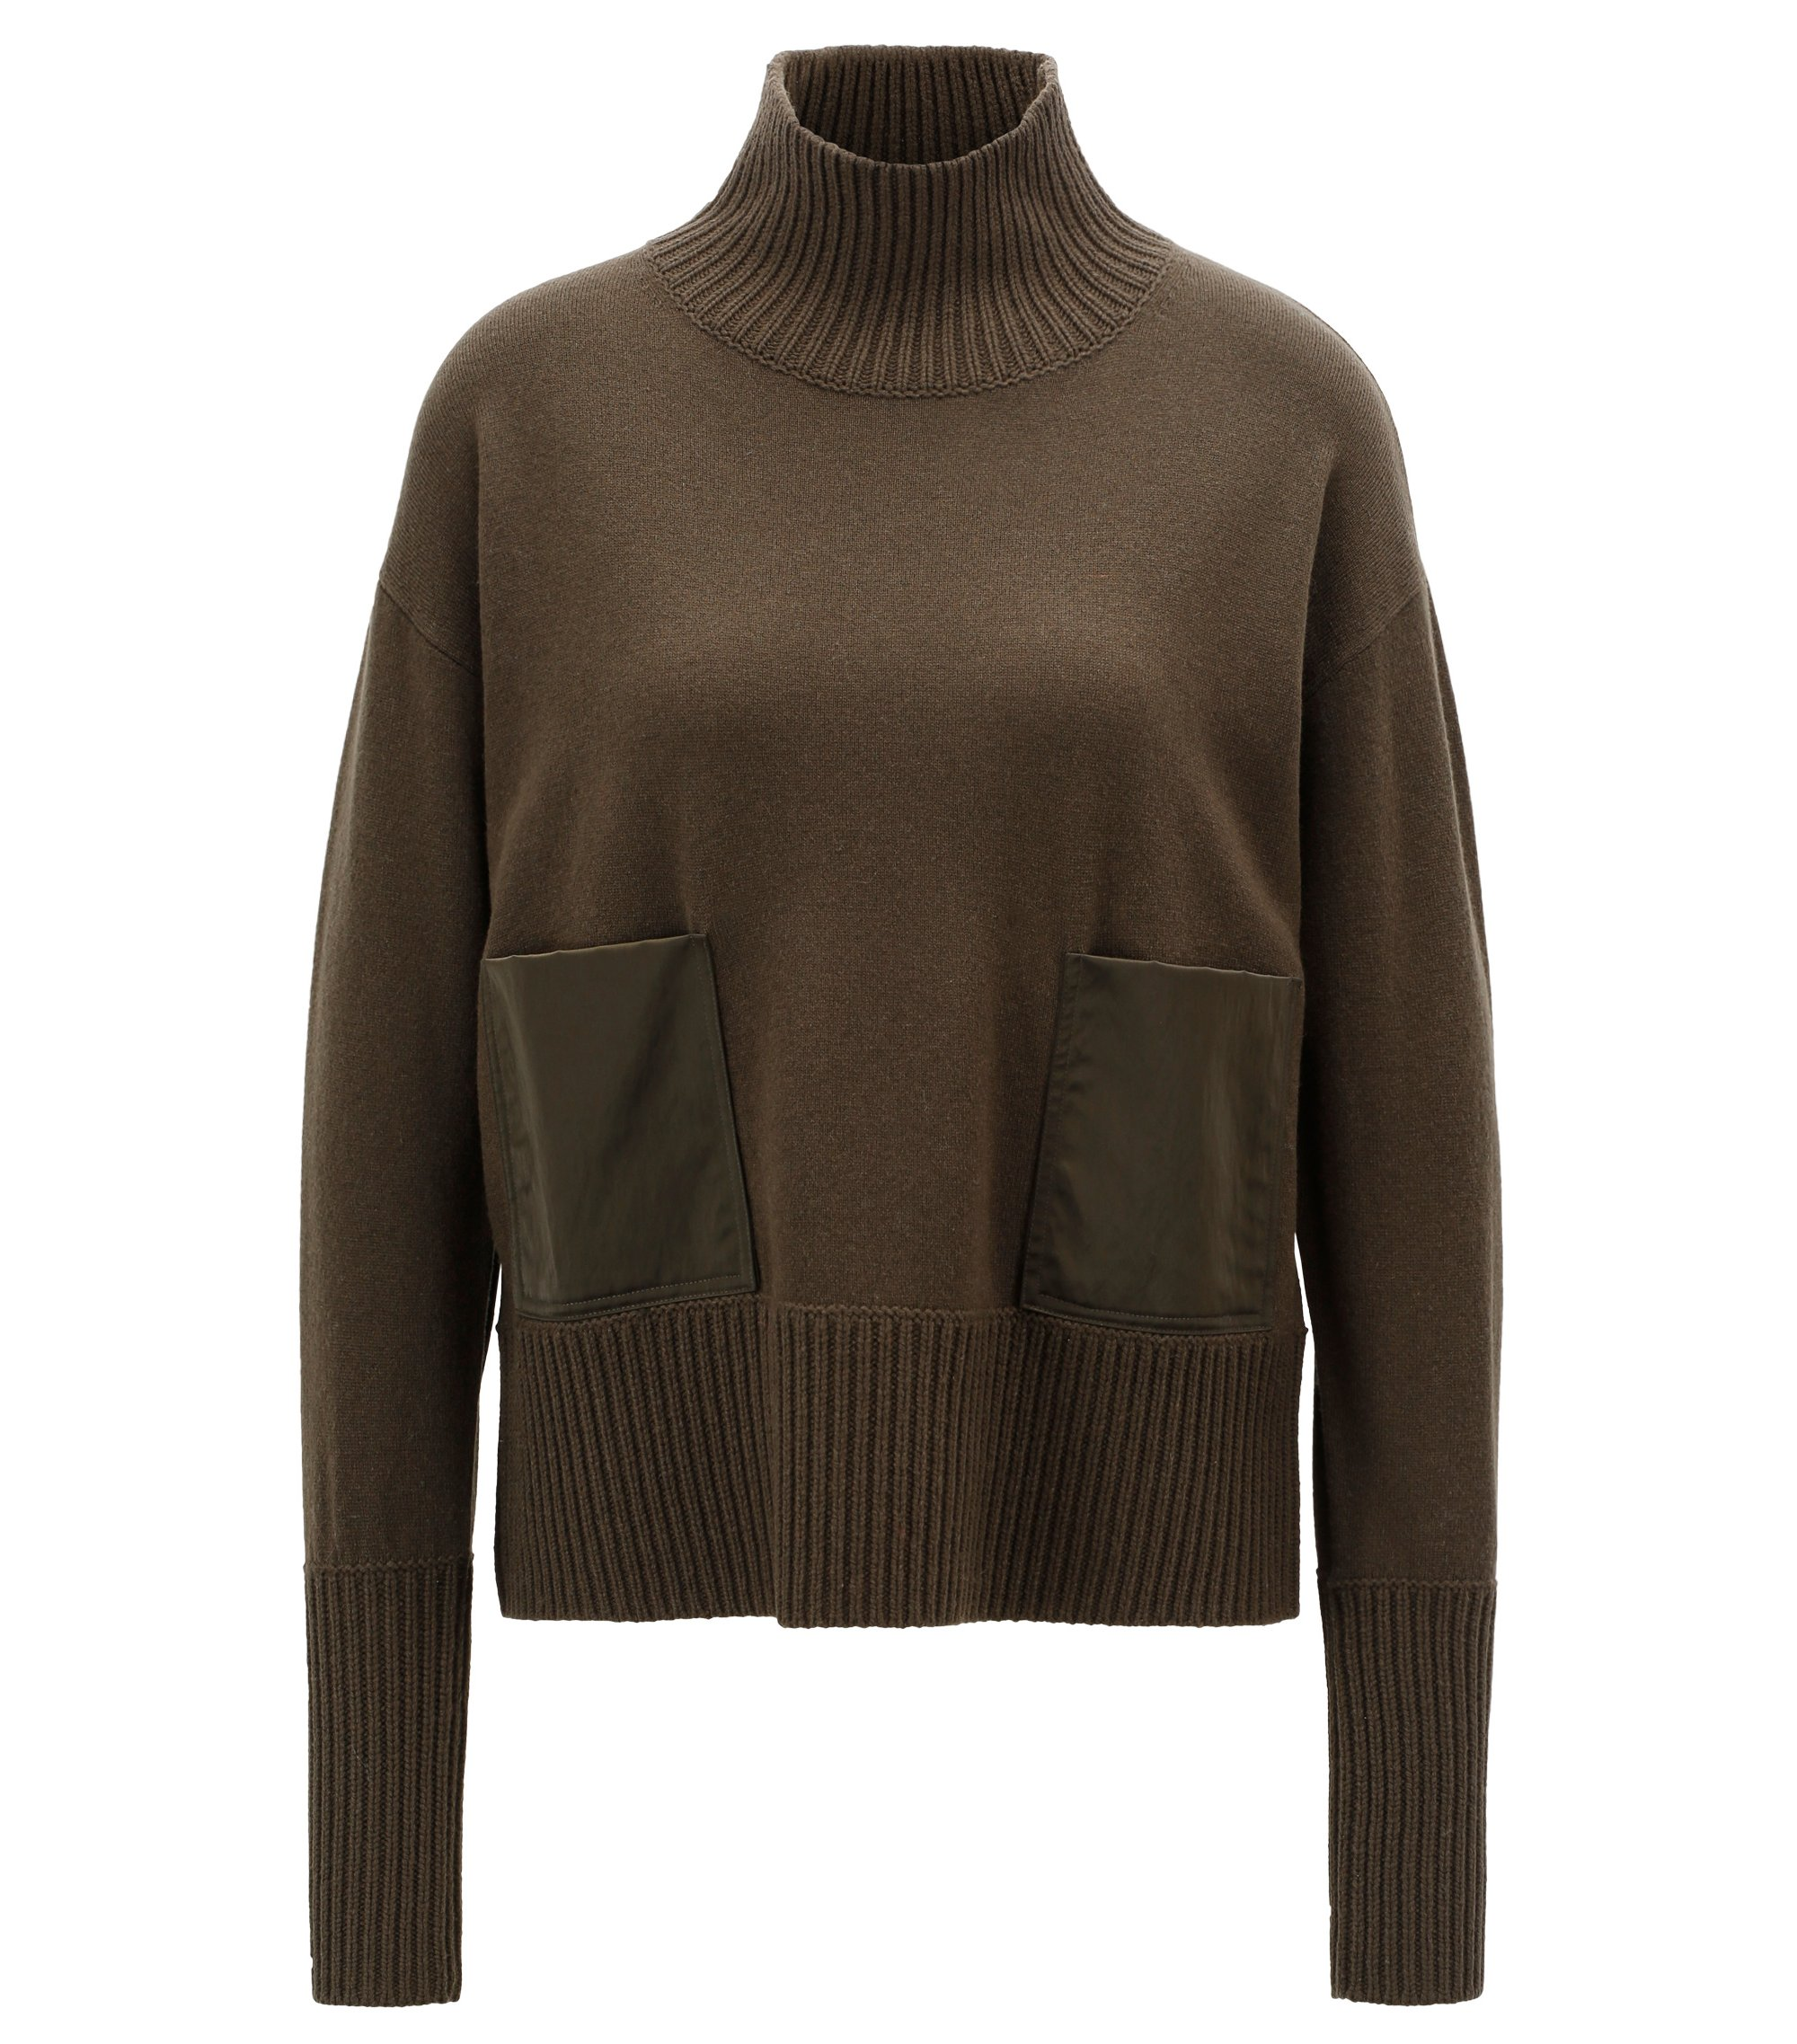 Wool-blend sweater with patch pockets and funnel neck, Dark Green